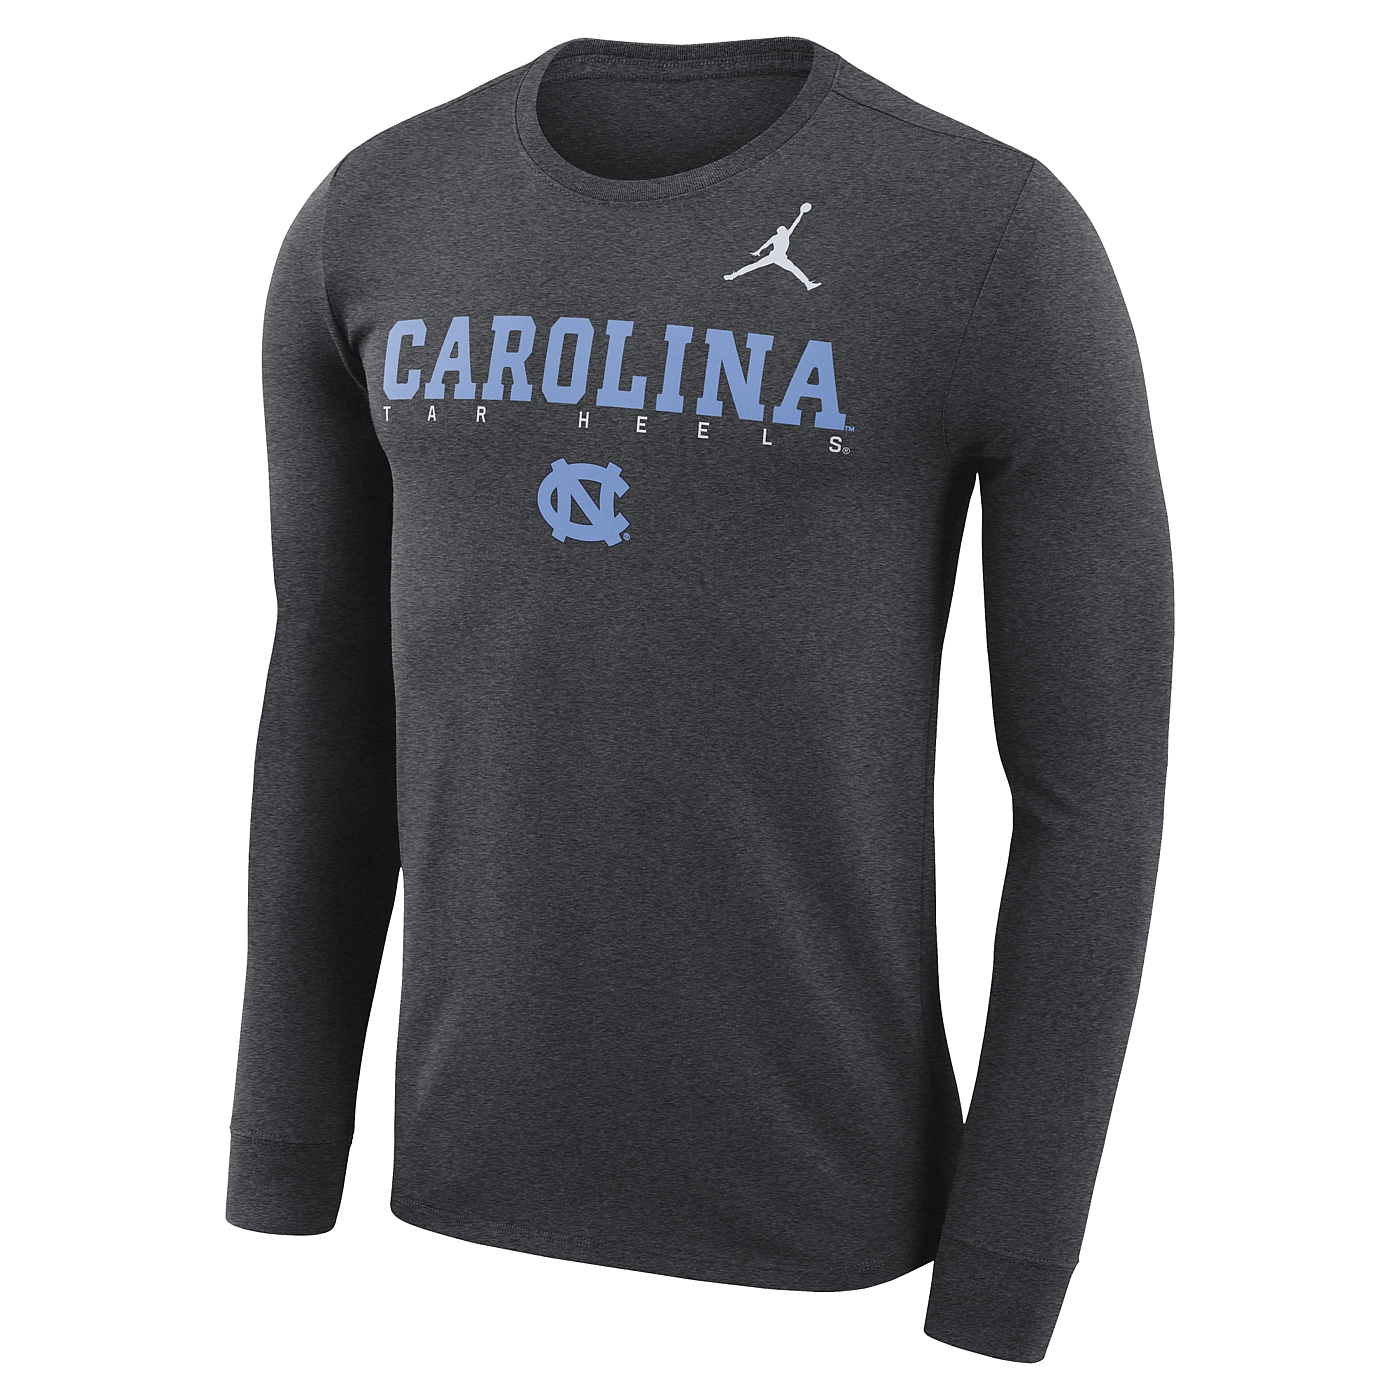 baed6841d8c8 Johnny T-shirt - North Carolina Tar Heels - Nike Long Sleeve Jumpman  Facility T (Charcoal Heather) by Nike